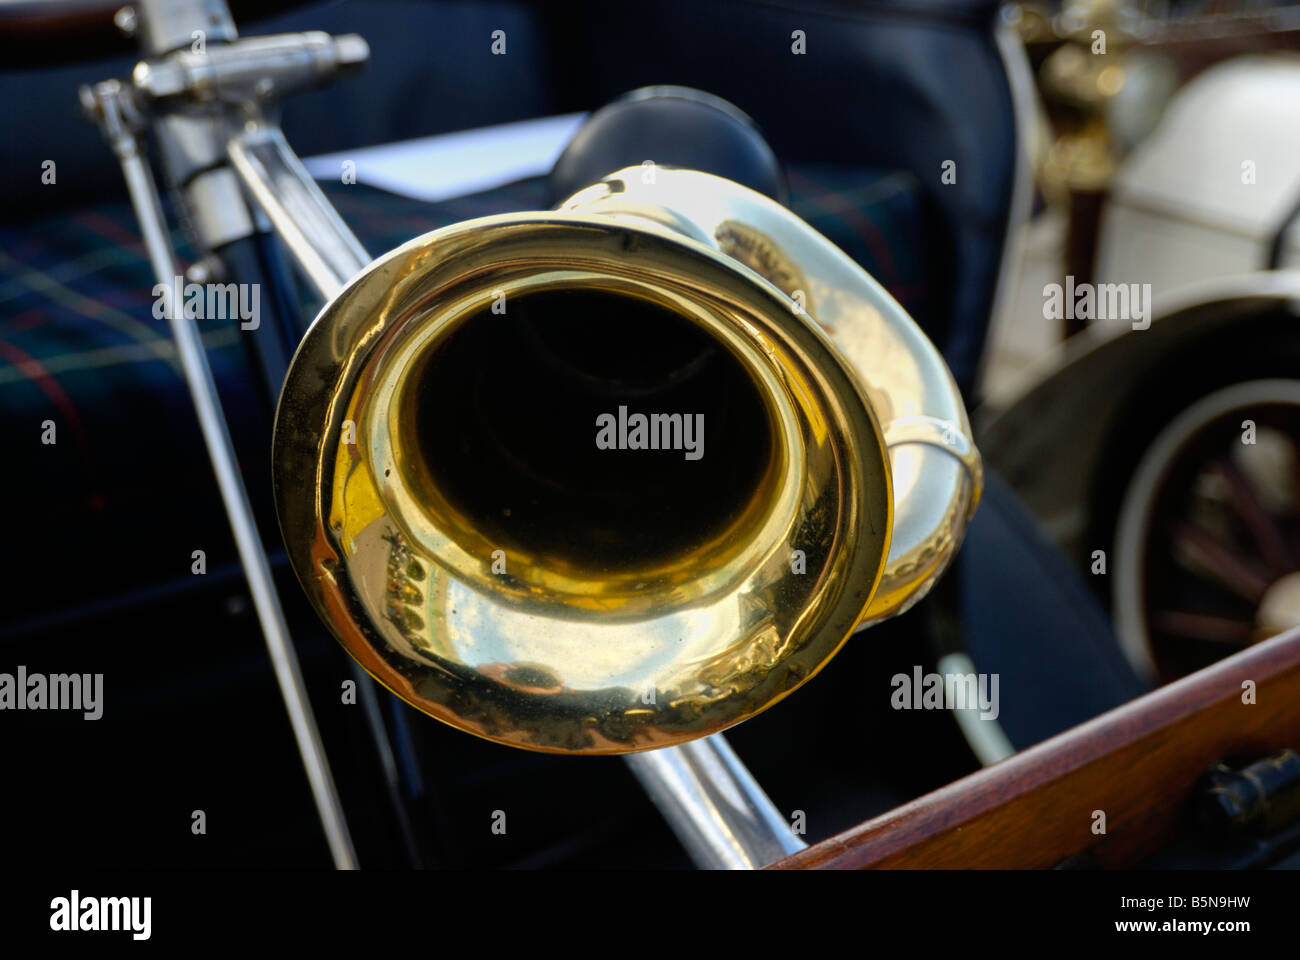 Vintage Old Car Horn Stock Photos & Vintage Old Car Horn Stock ...